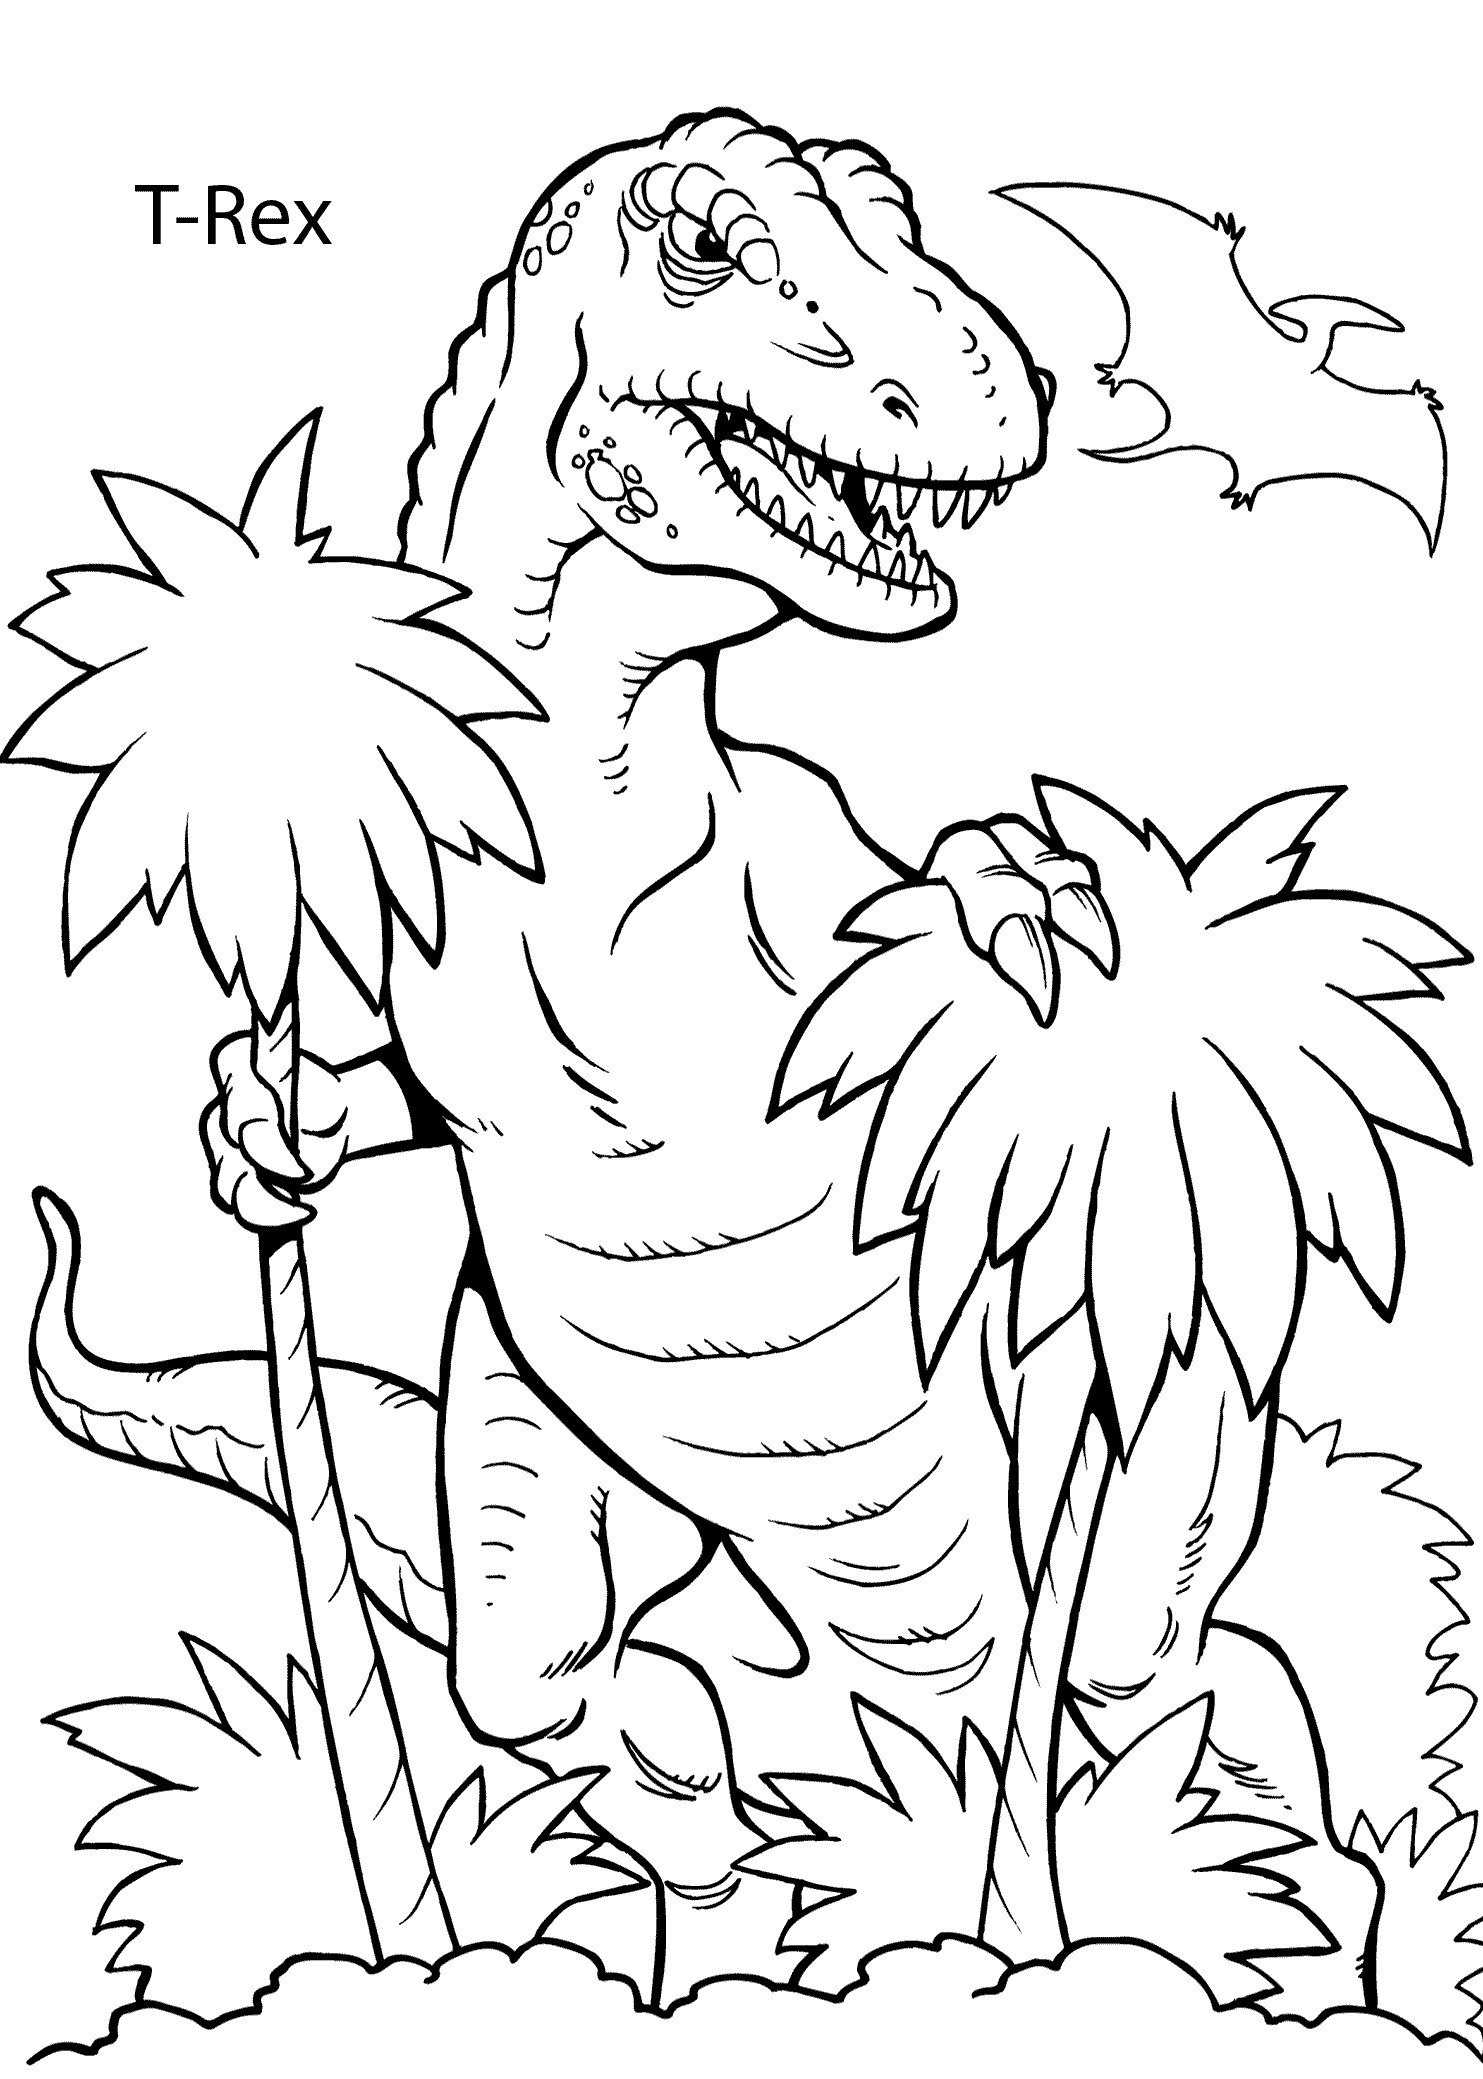 dinosaur-coloring-pages-jurassic-world-of-dinosaur-coloring-pages-jurassic-world Dinosaur Coloring Pages Jurassic World Dinosaurs